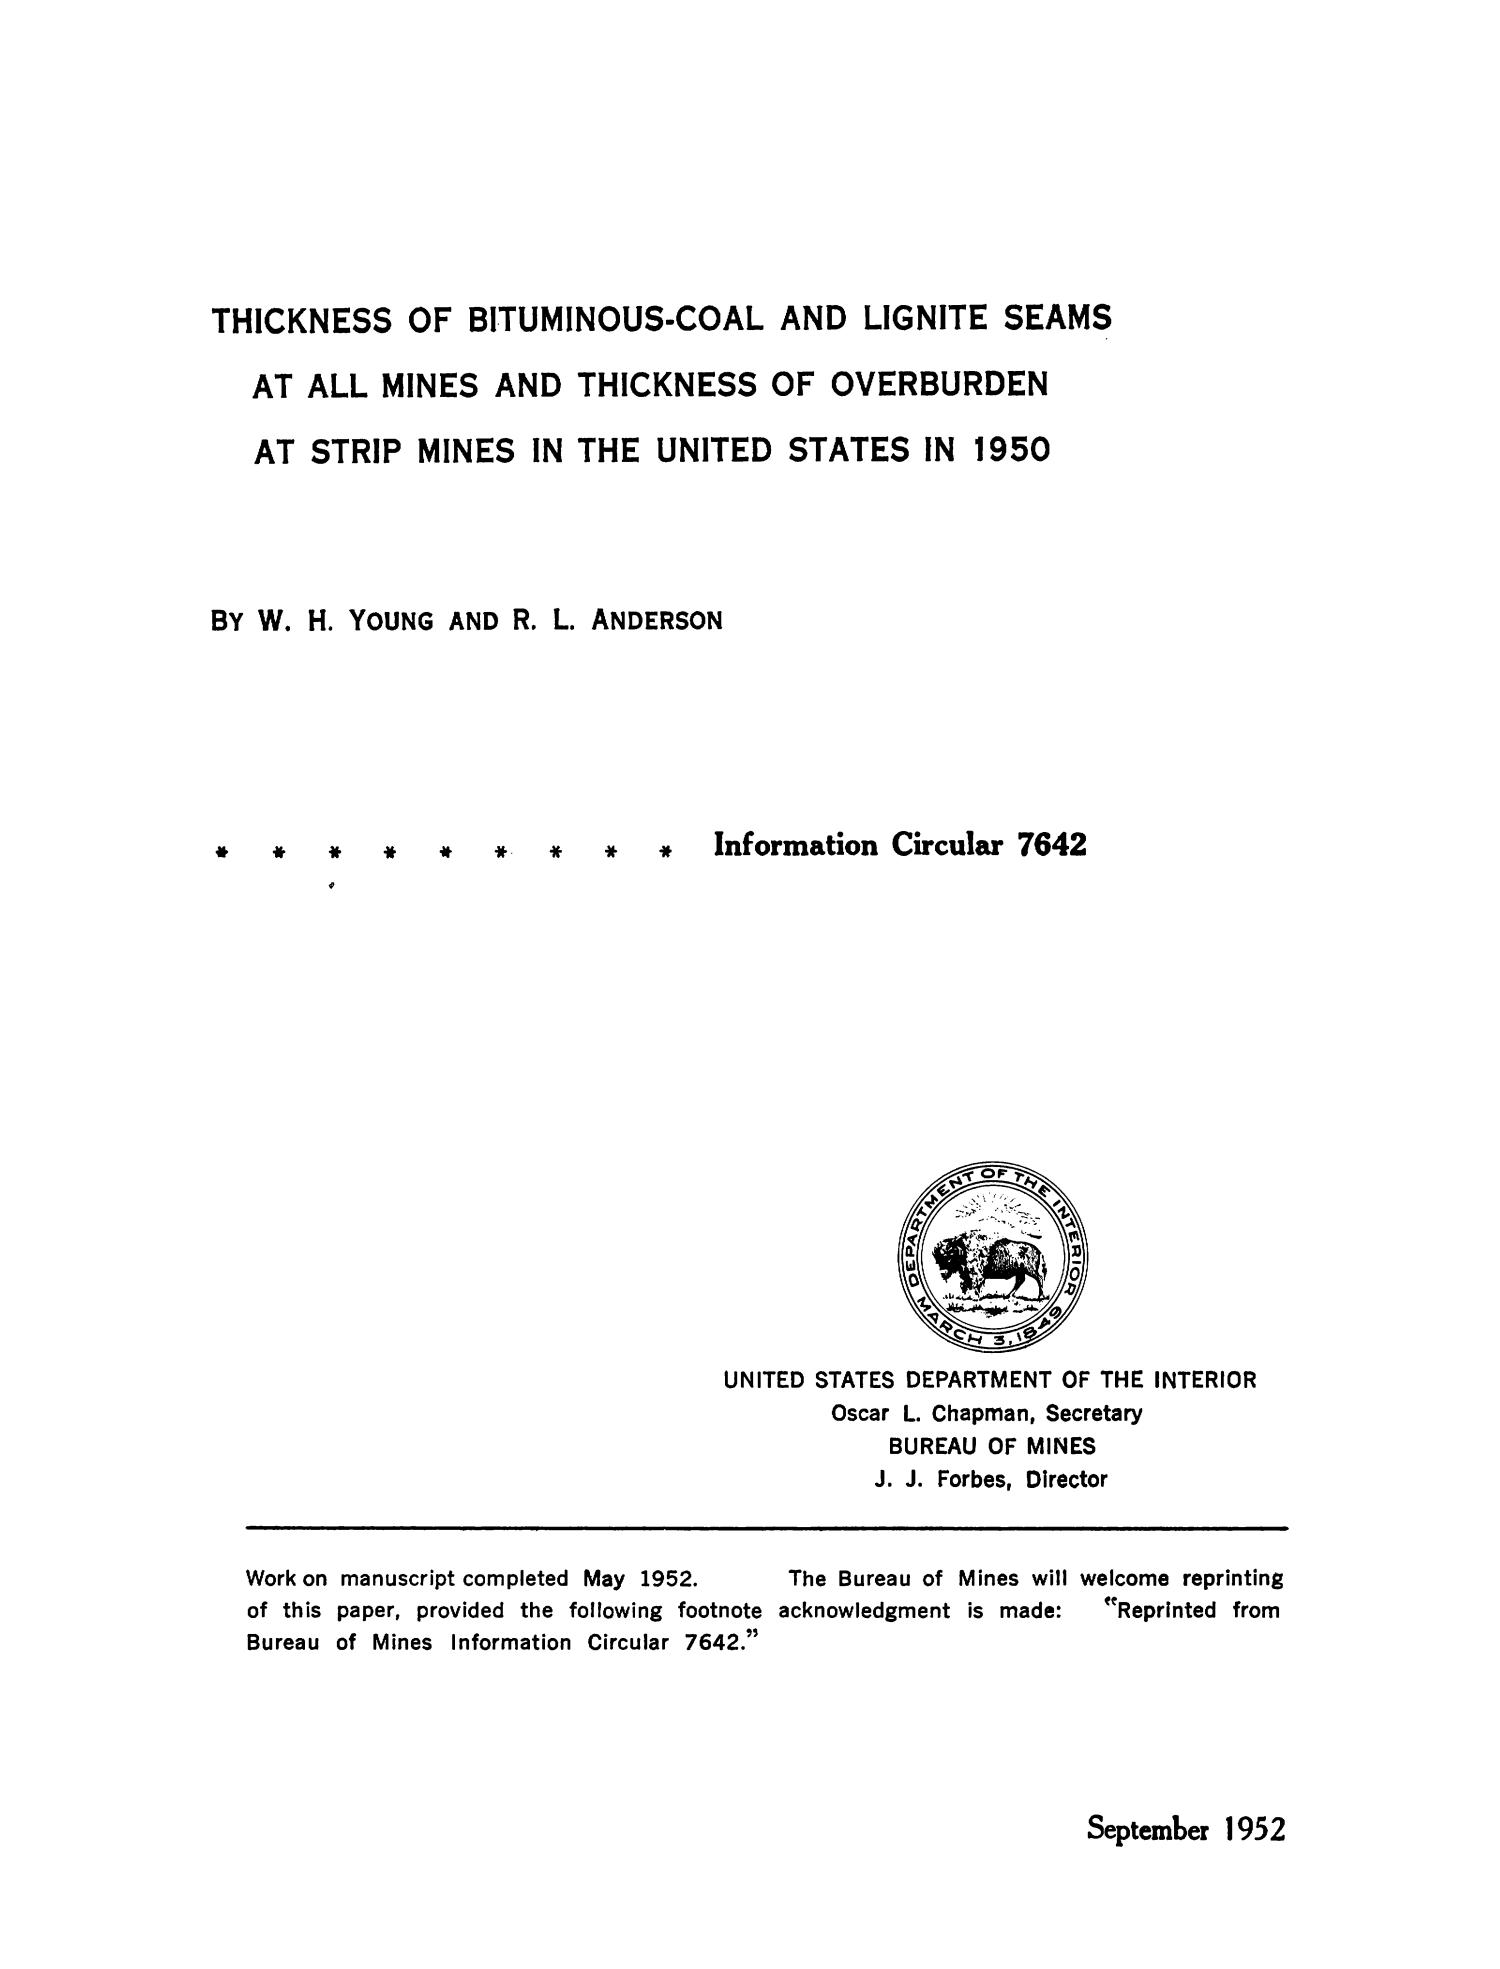 Thickness of Bituminous-Coal and Lignite Seams at All Mines and Thickness of Overburden at Strip Mines in the United States in 1950                                                                                                      Title Page